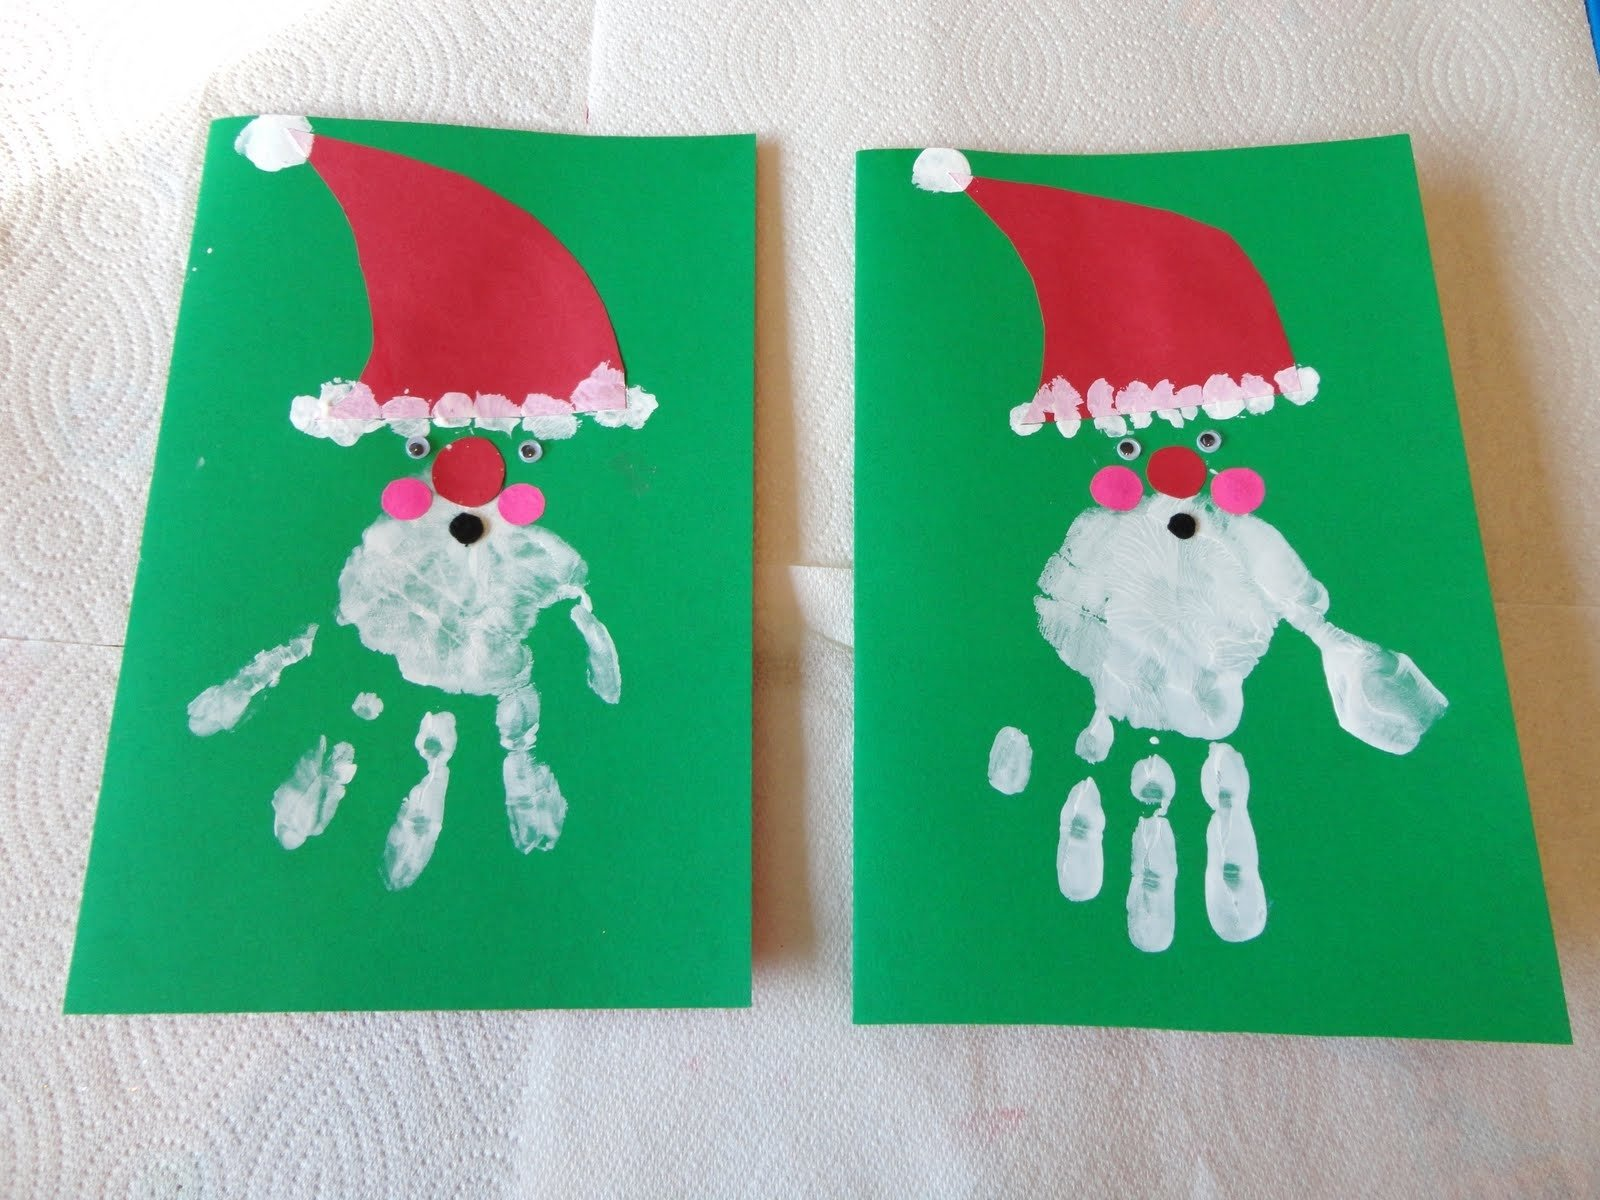 creative handmade card ideas for christmas godfather style kids to